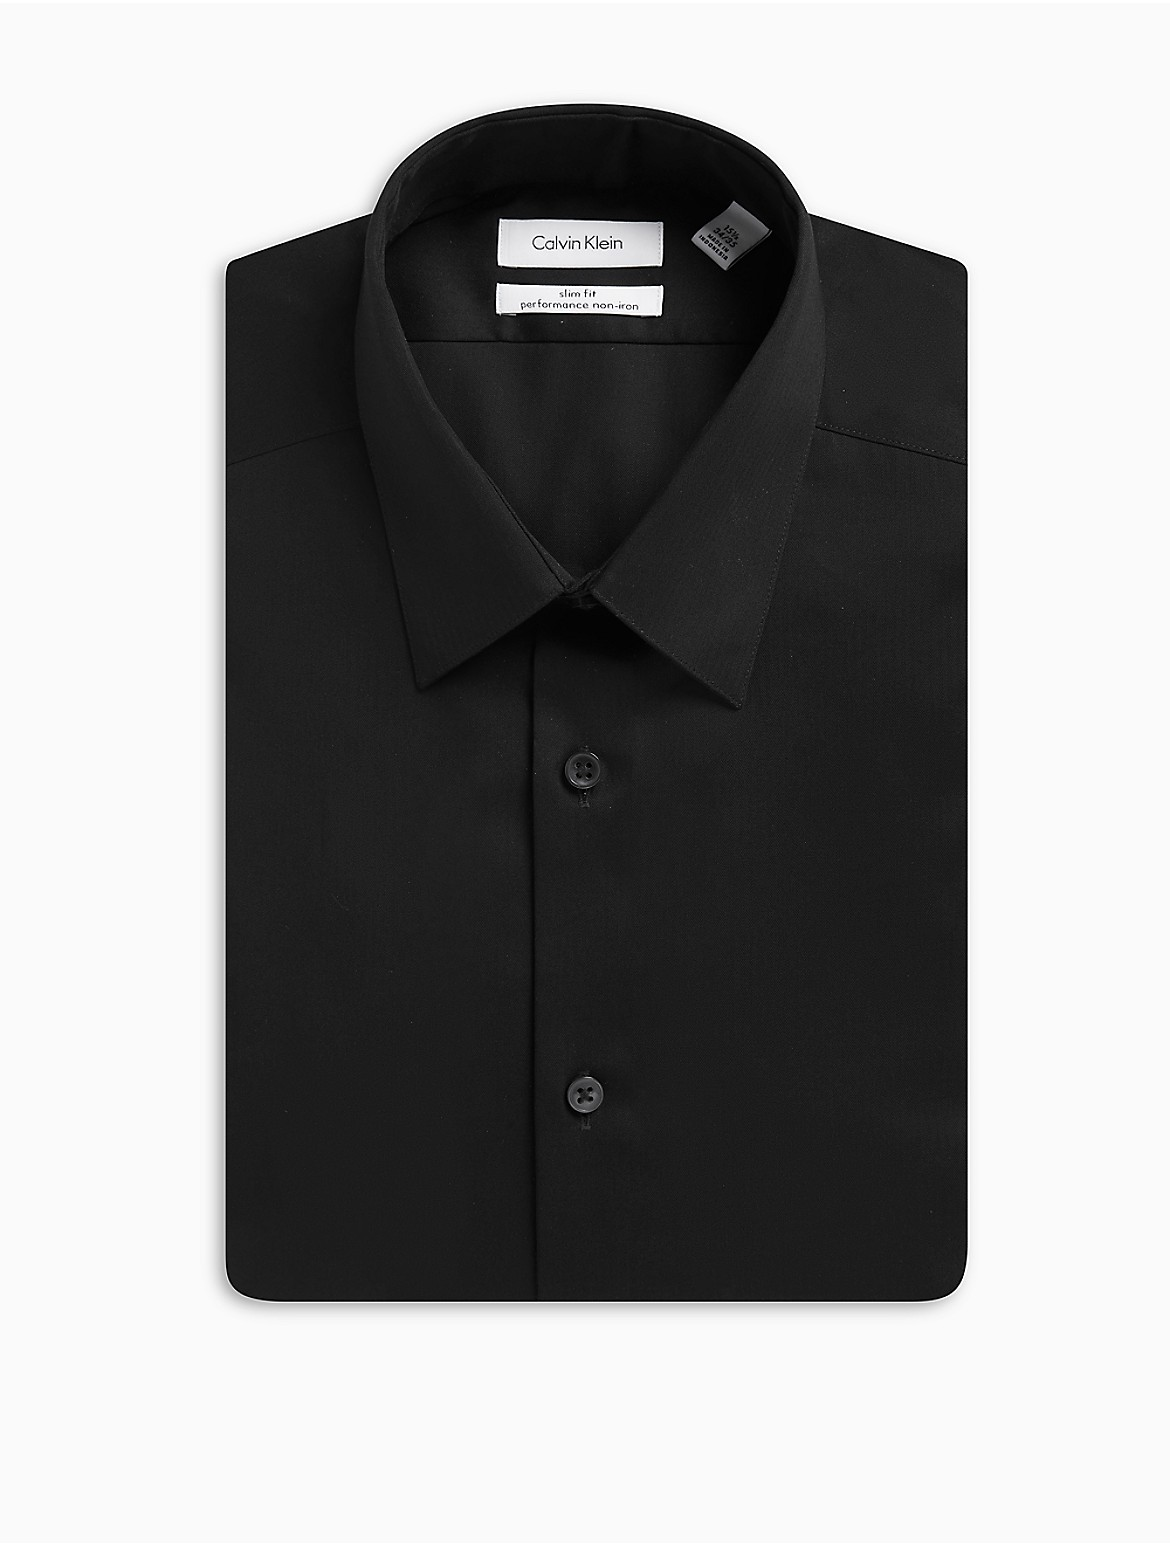 X Fit Ultra Slim Fit Solid Point Collar Dress Shirt Calvin Klein